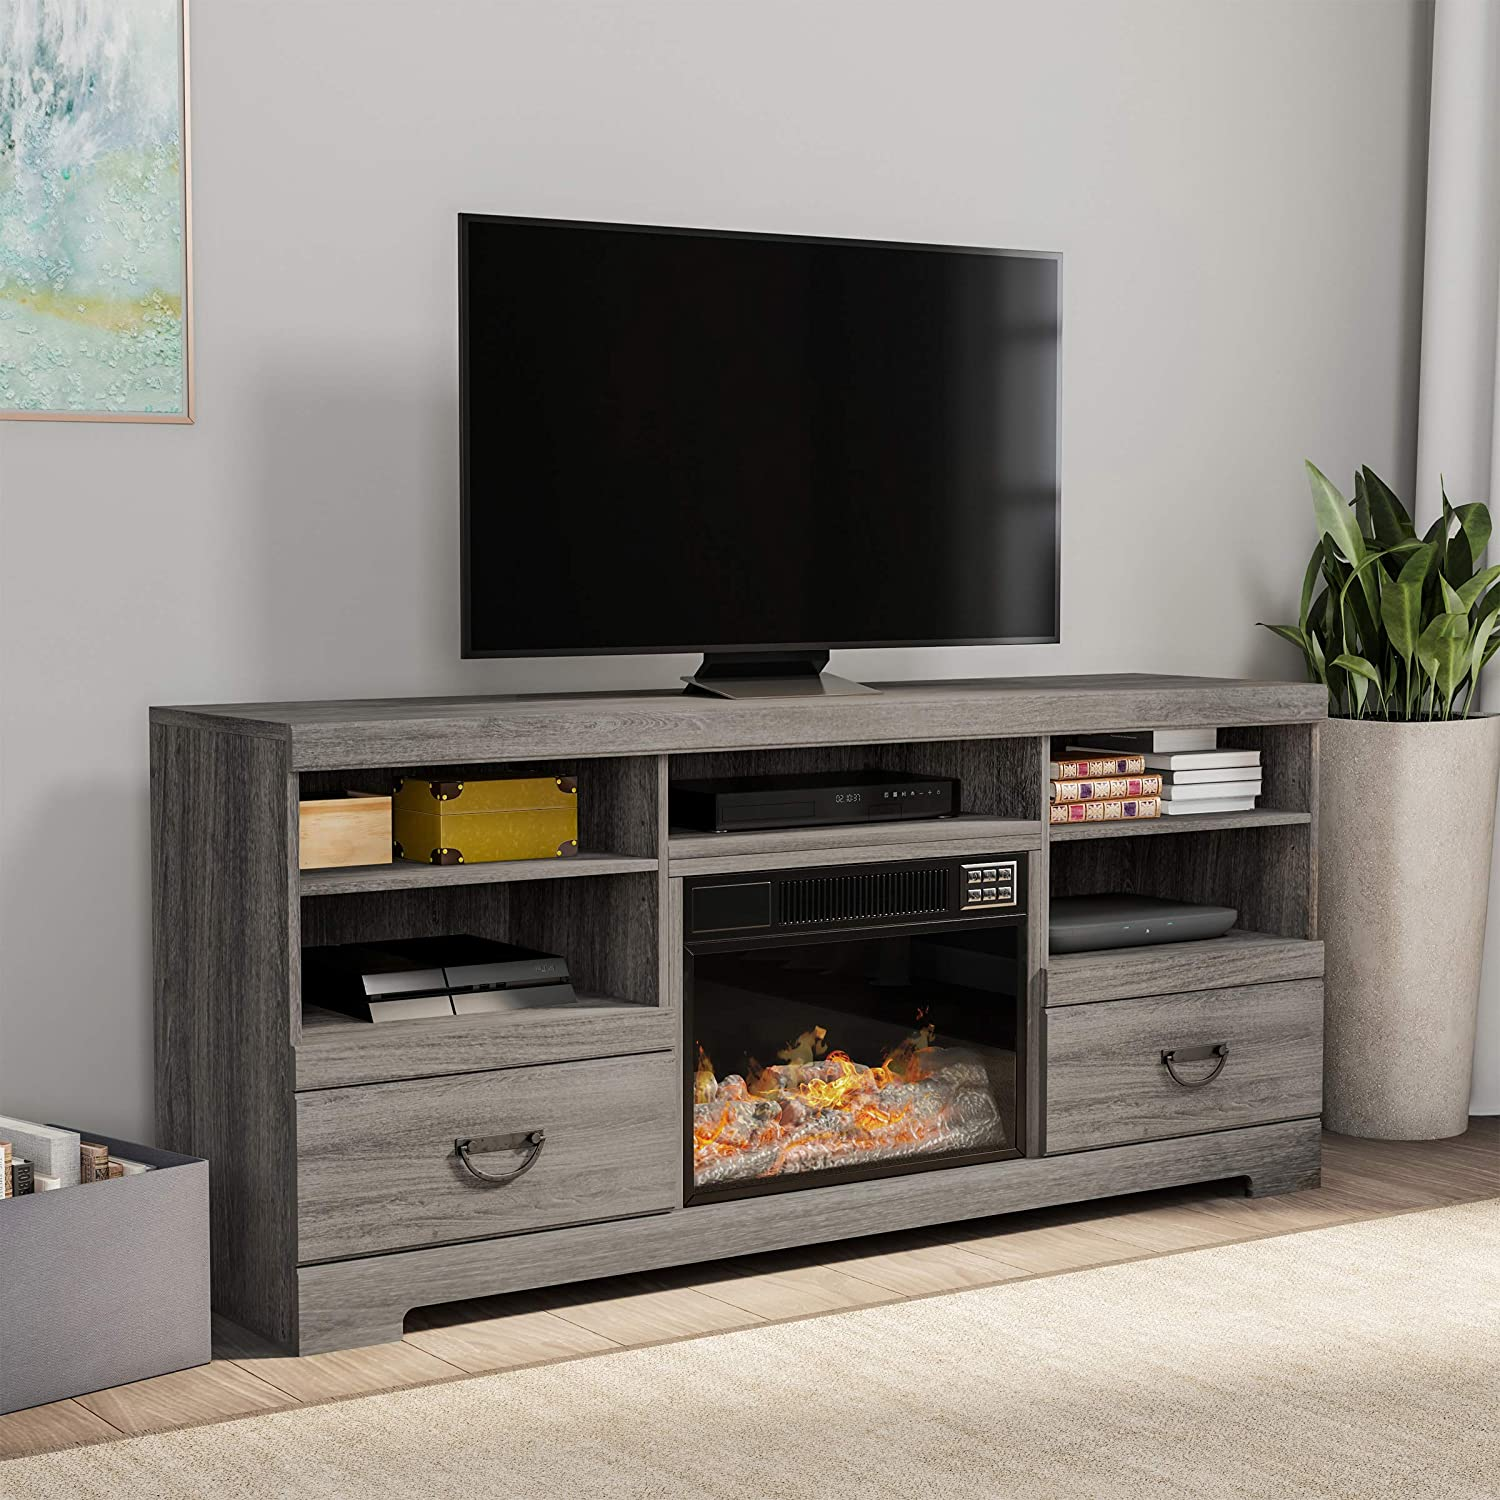 """Lavish Home 80-FPWF-8 Heat Electric Fireplace Console-for TVs up to 65"""", Media Shelves,Two Drawers,Remote Control, LED Flames, Adjustable Heat & Light by Northwest, Grey"""